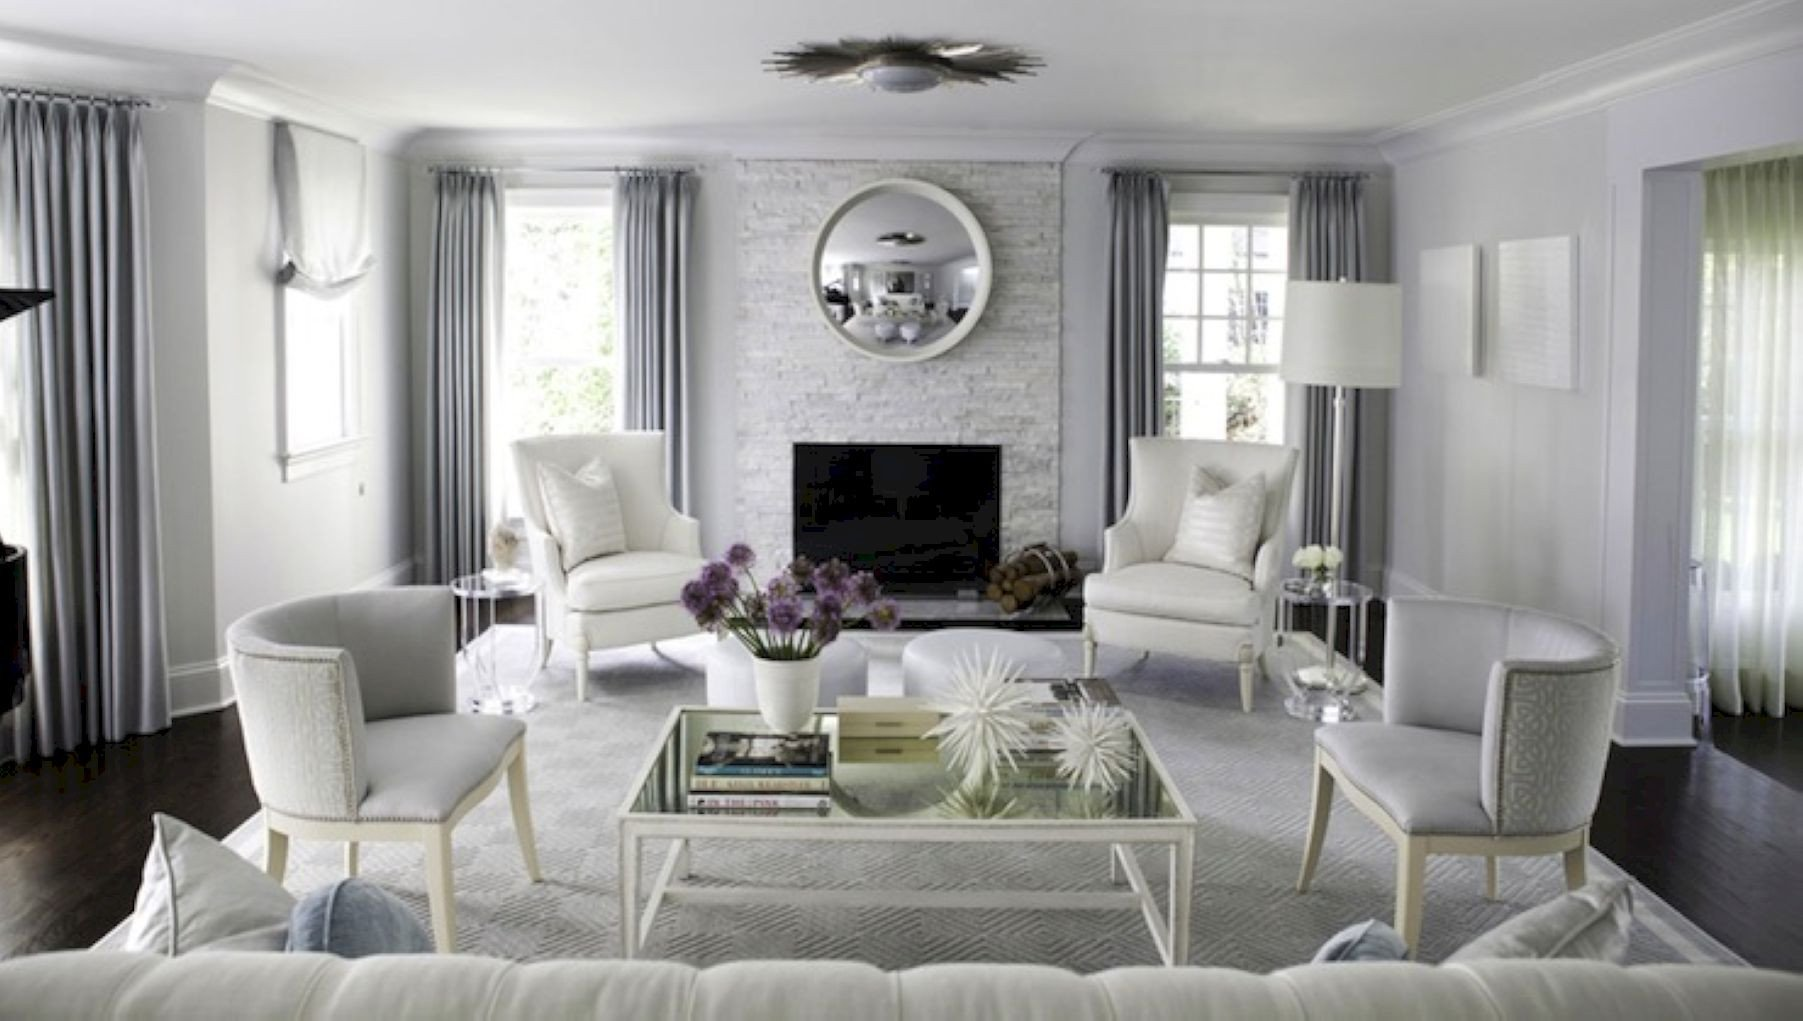 Gray Living Room Decor Ideas Beautiful 70 Stunning Gray and White Living Room Decor Ideas Roundecor